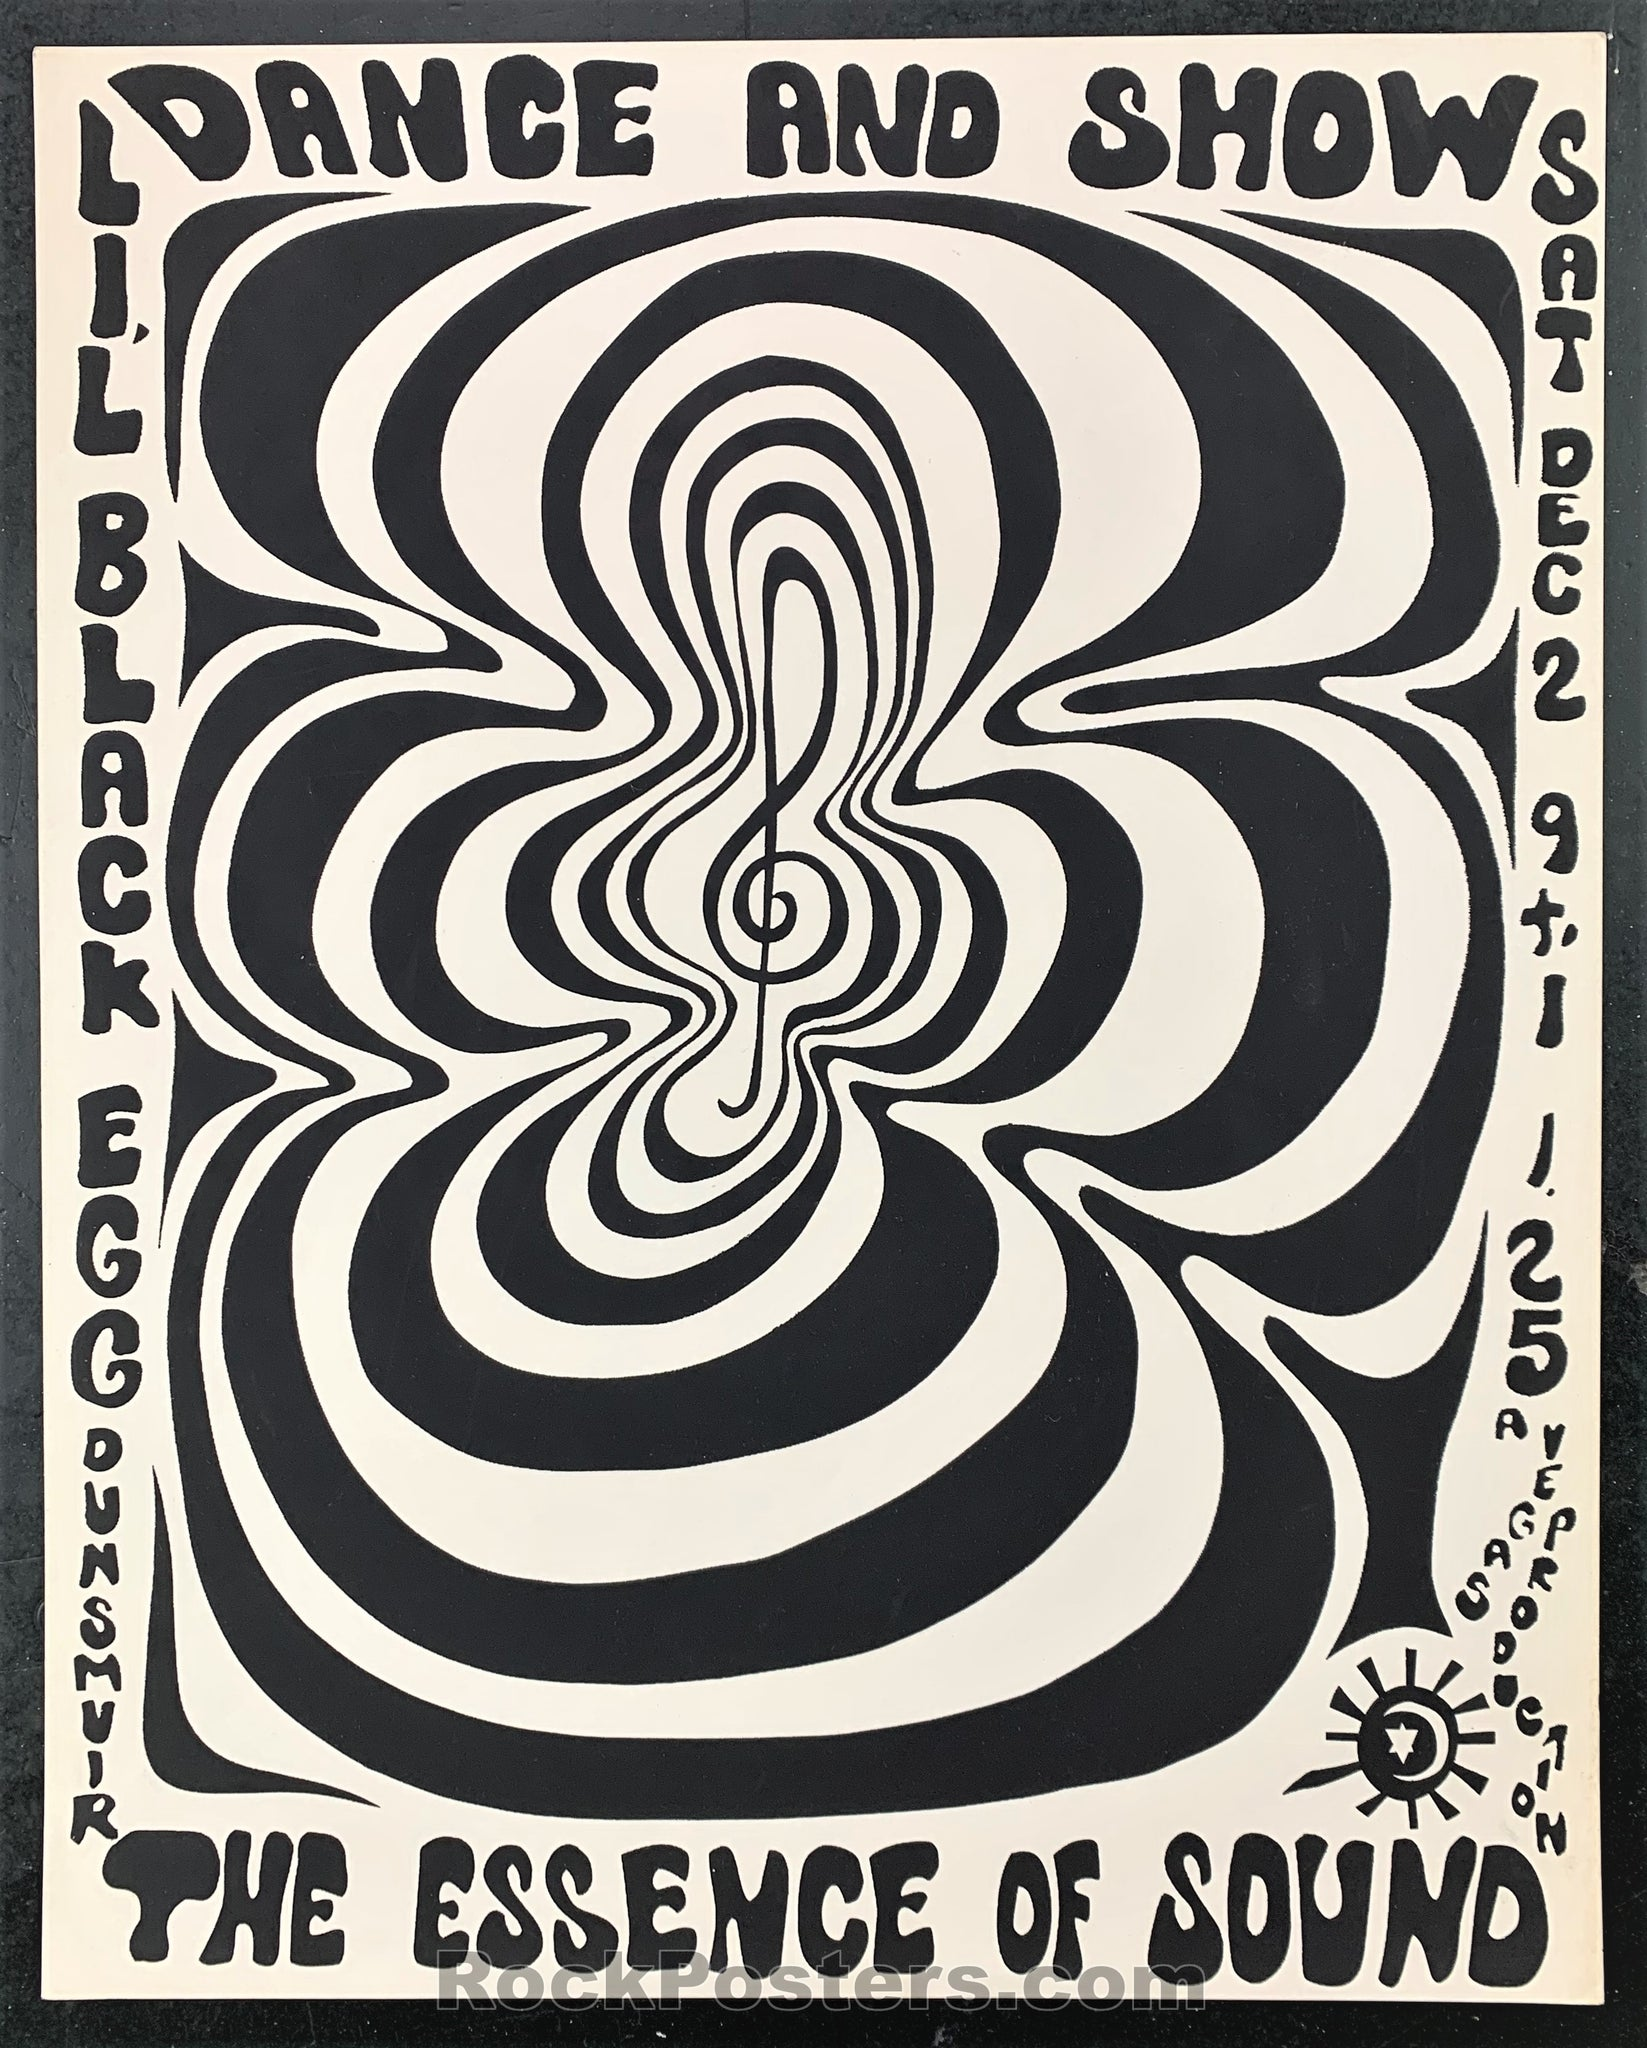 AUCTION - Dance & Show - Psychedelic  1967 Concert Poster  - Northern California - Condition - Near Mint Minus